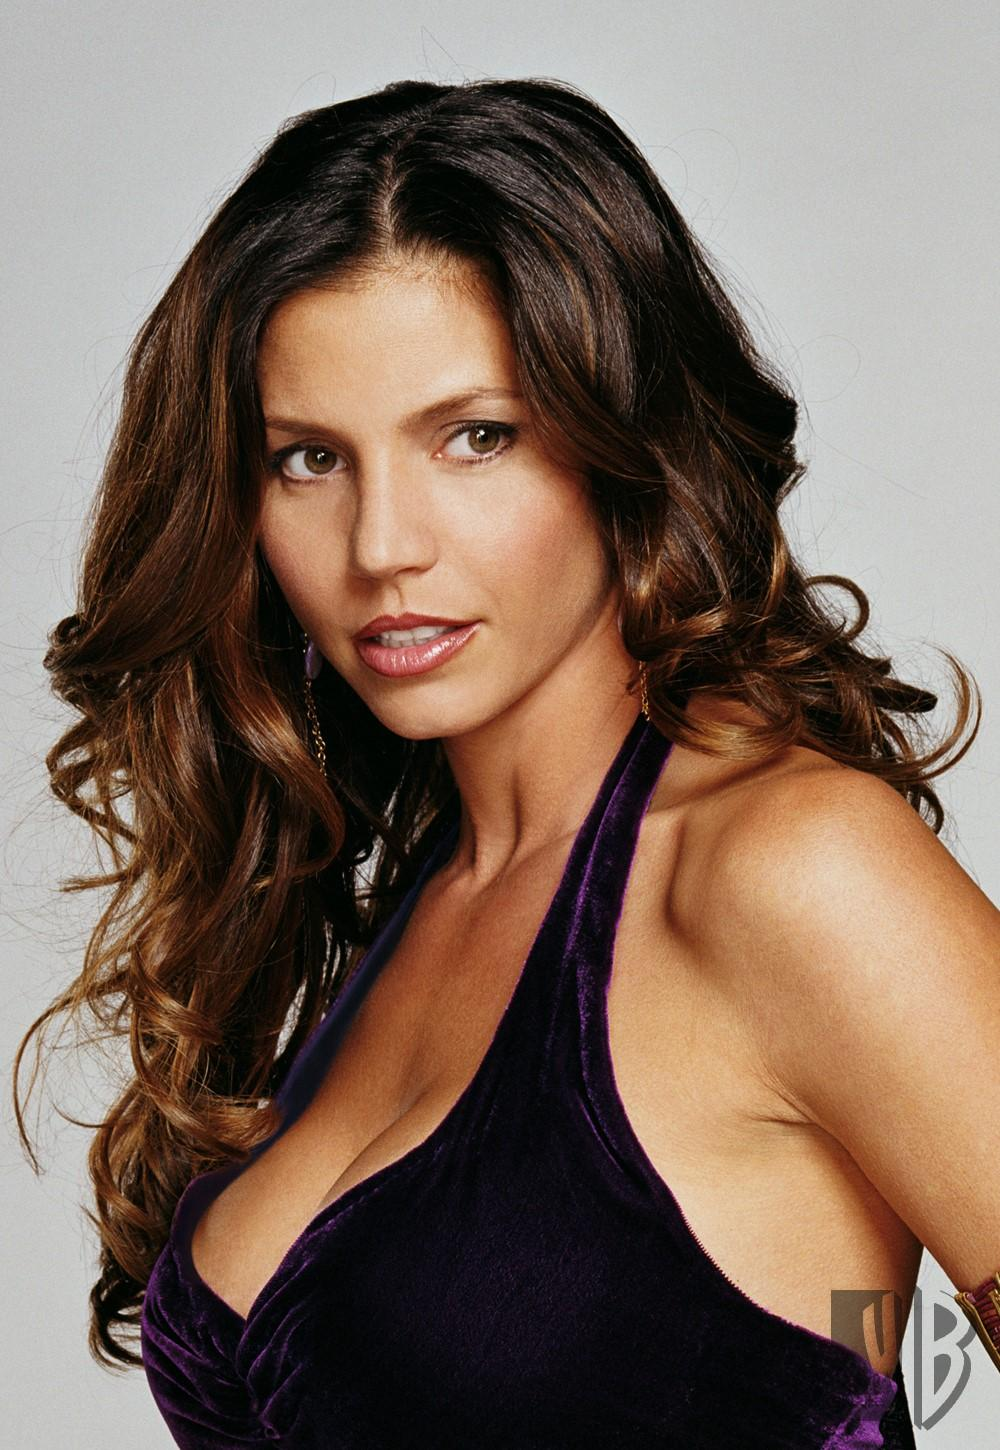 Pictures Charisma Lee Carpenter